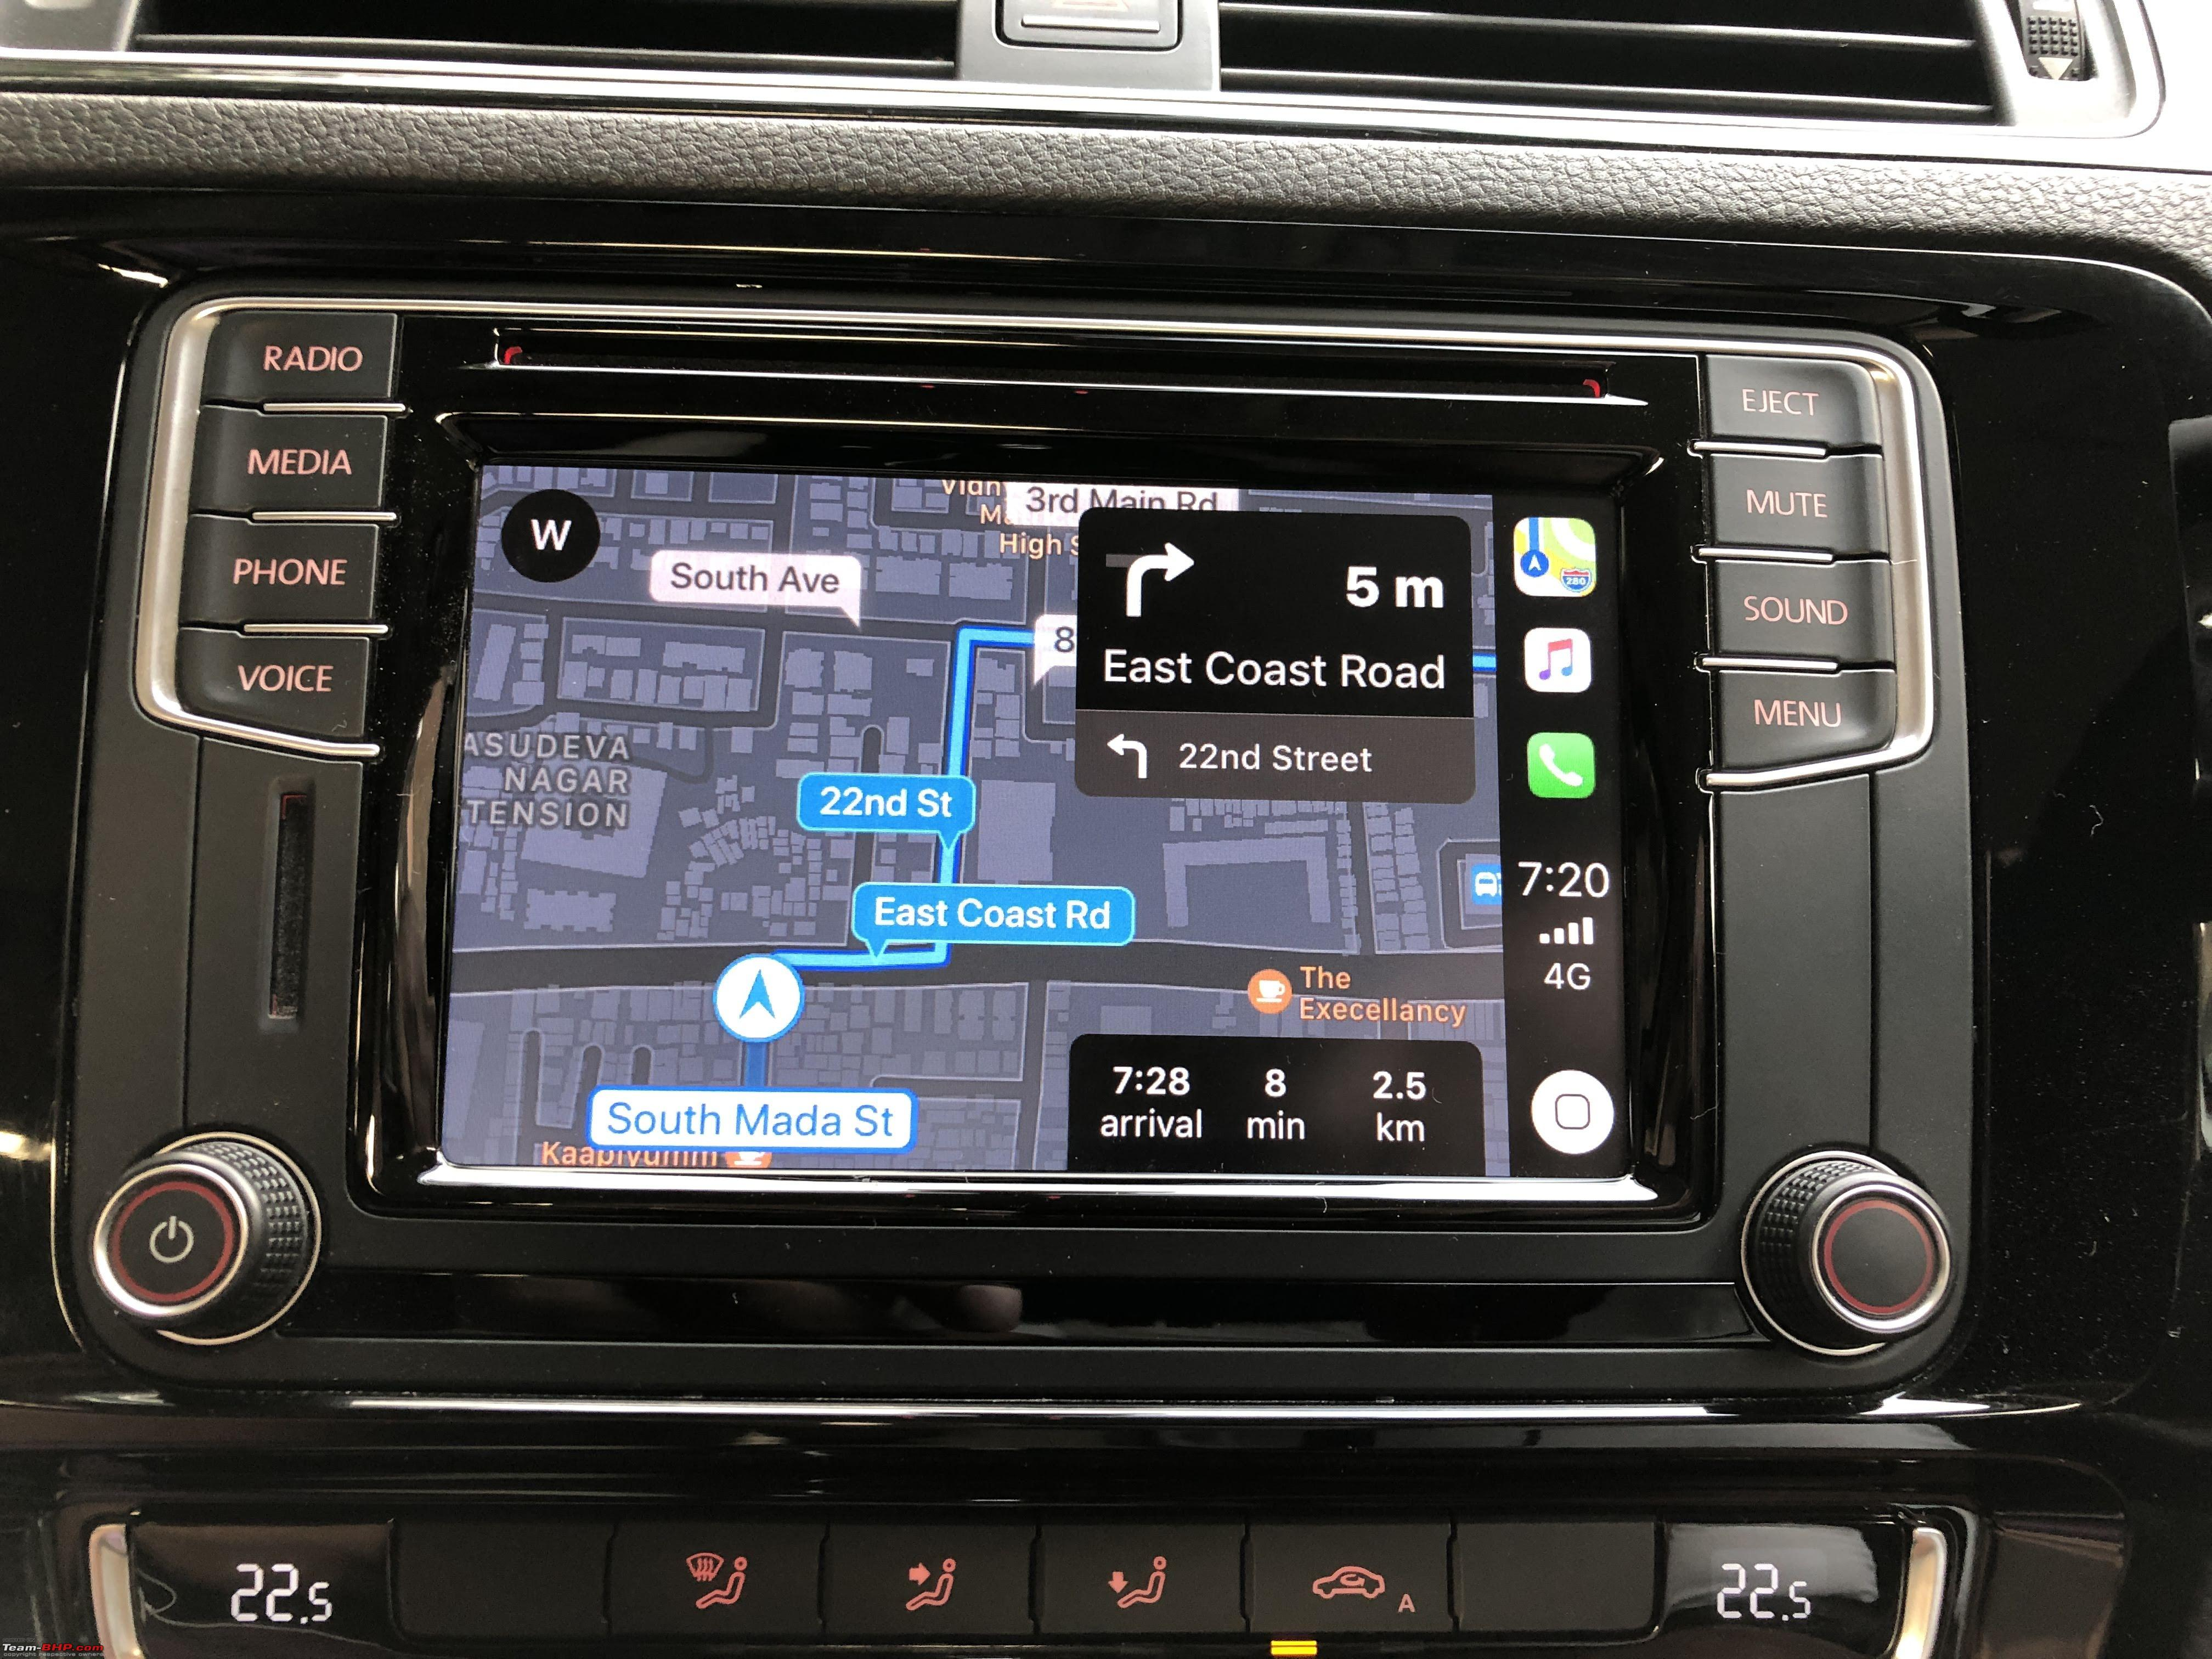 VW owners: Now get Apple CarPlay / Android Auto on your head